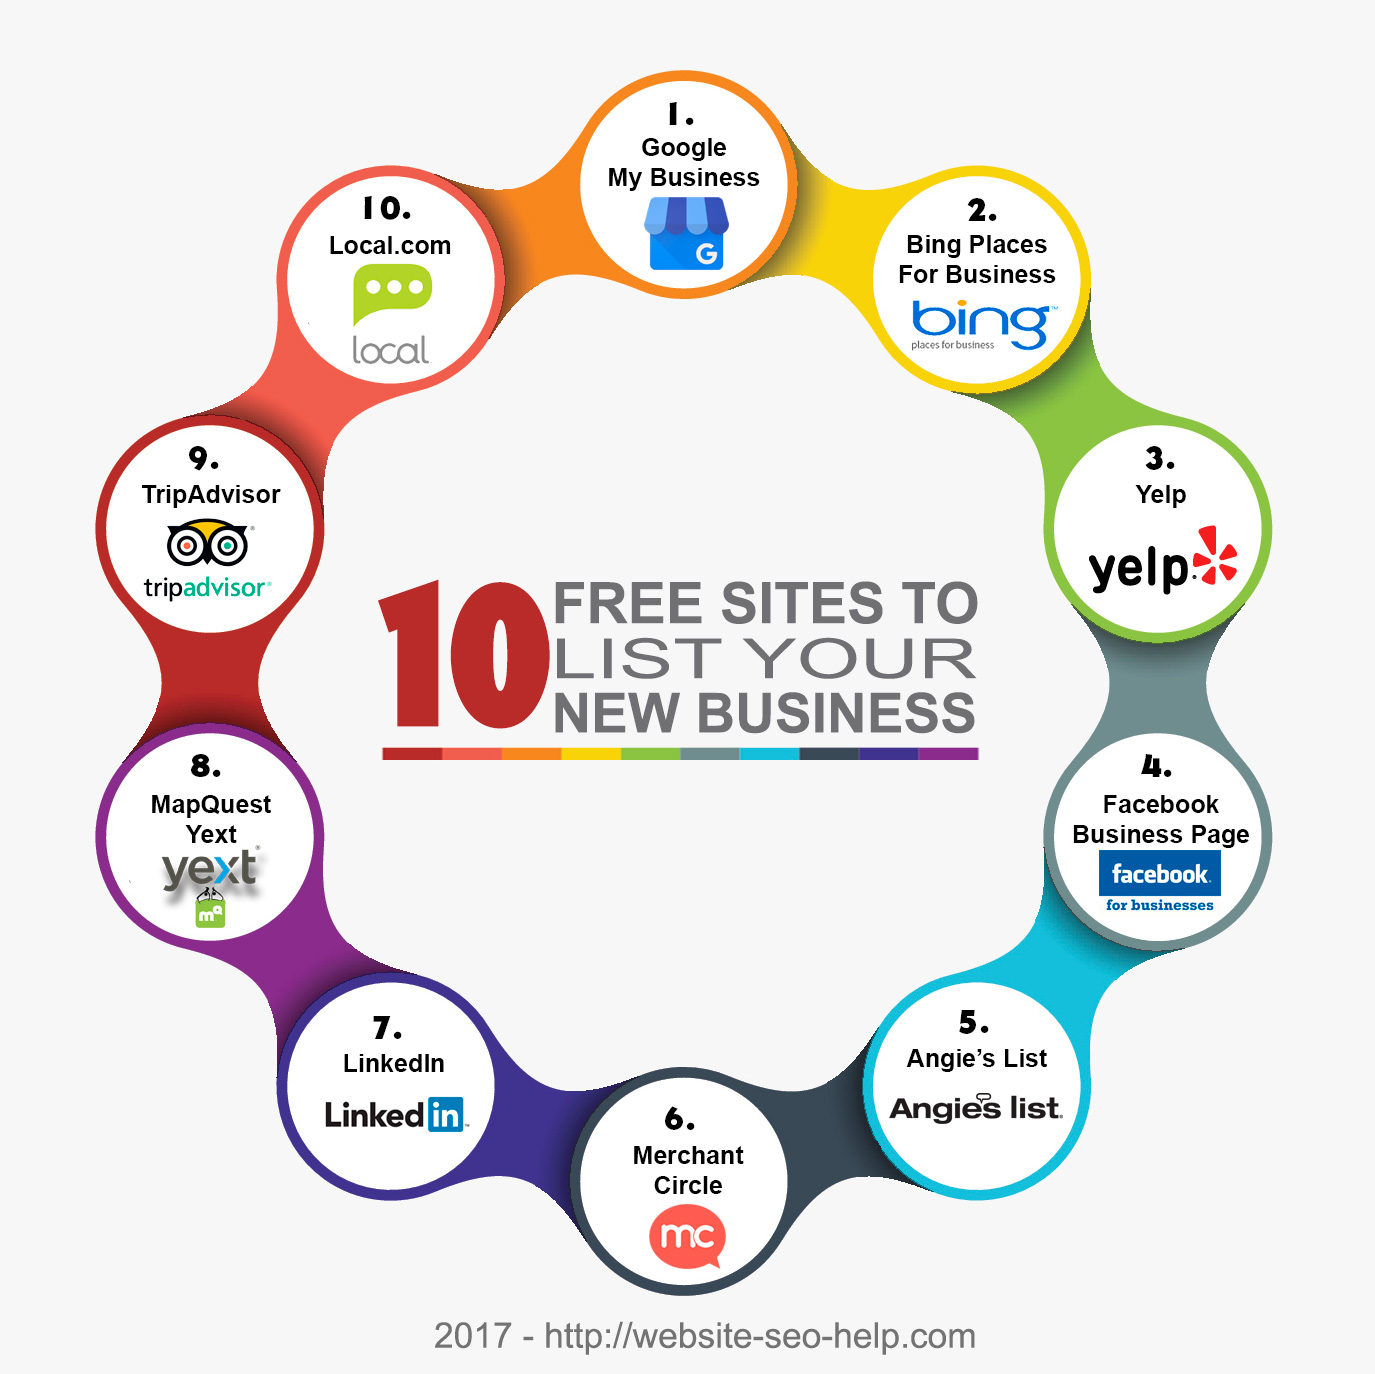 Top 10 FREE Sites to List Your New Business